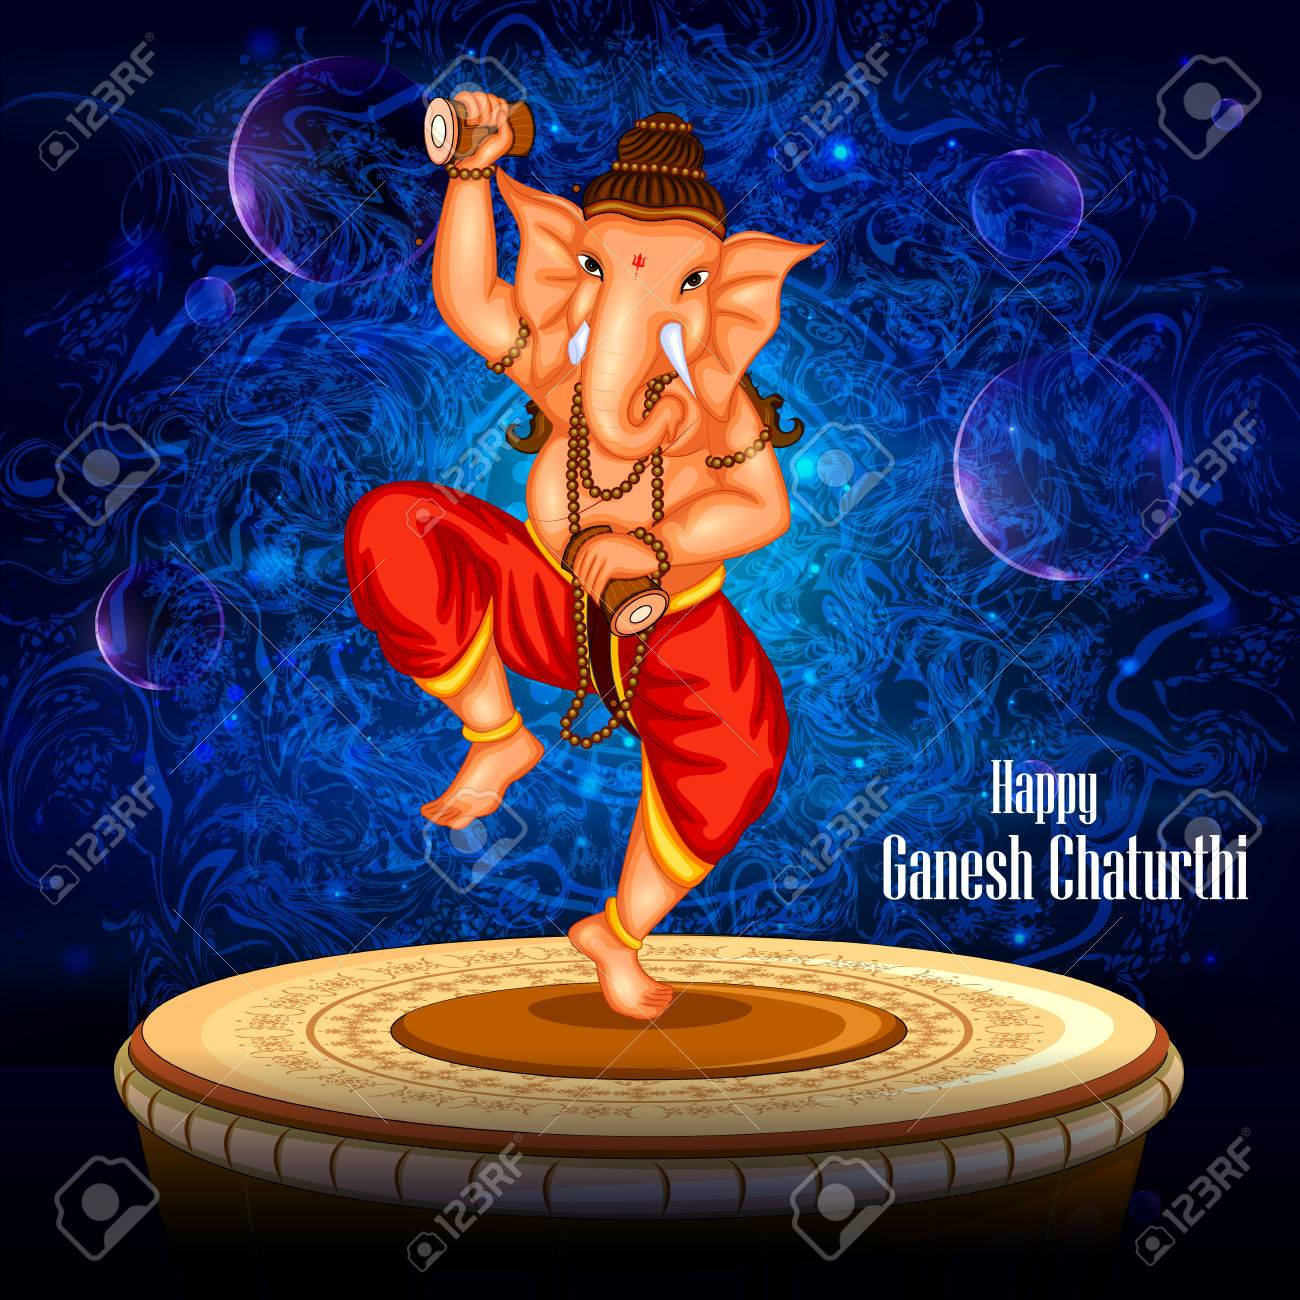 Easy To Edit Vector Illustration Of Happy Ganesh Chaturthi Background Royalty Free Cliparts Vectors And Stock Illustration Image 61959347